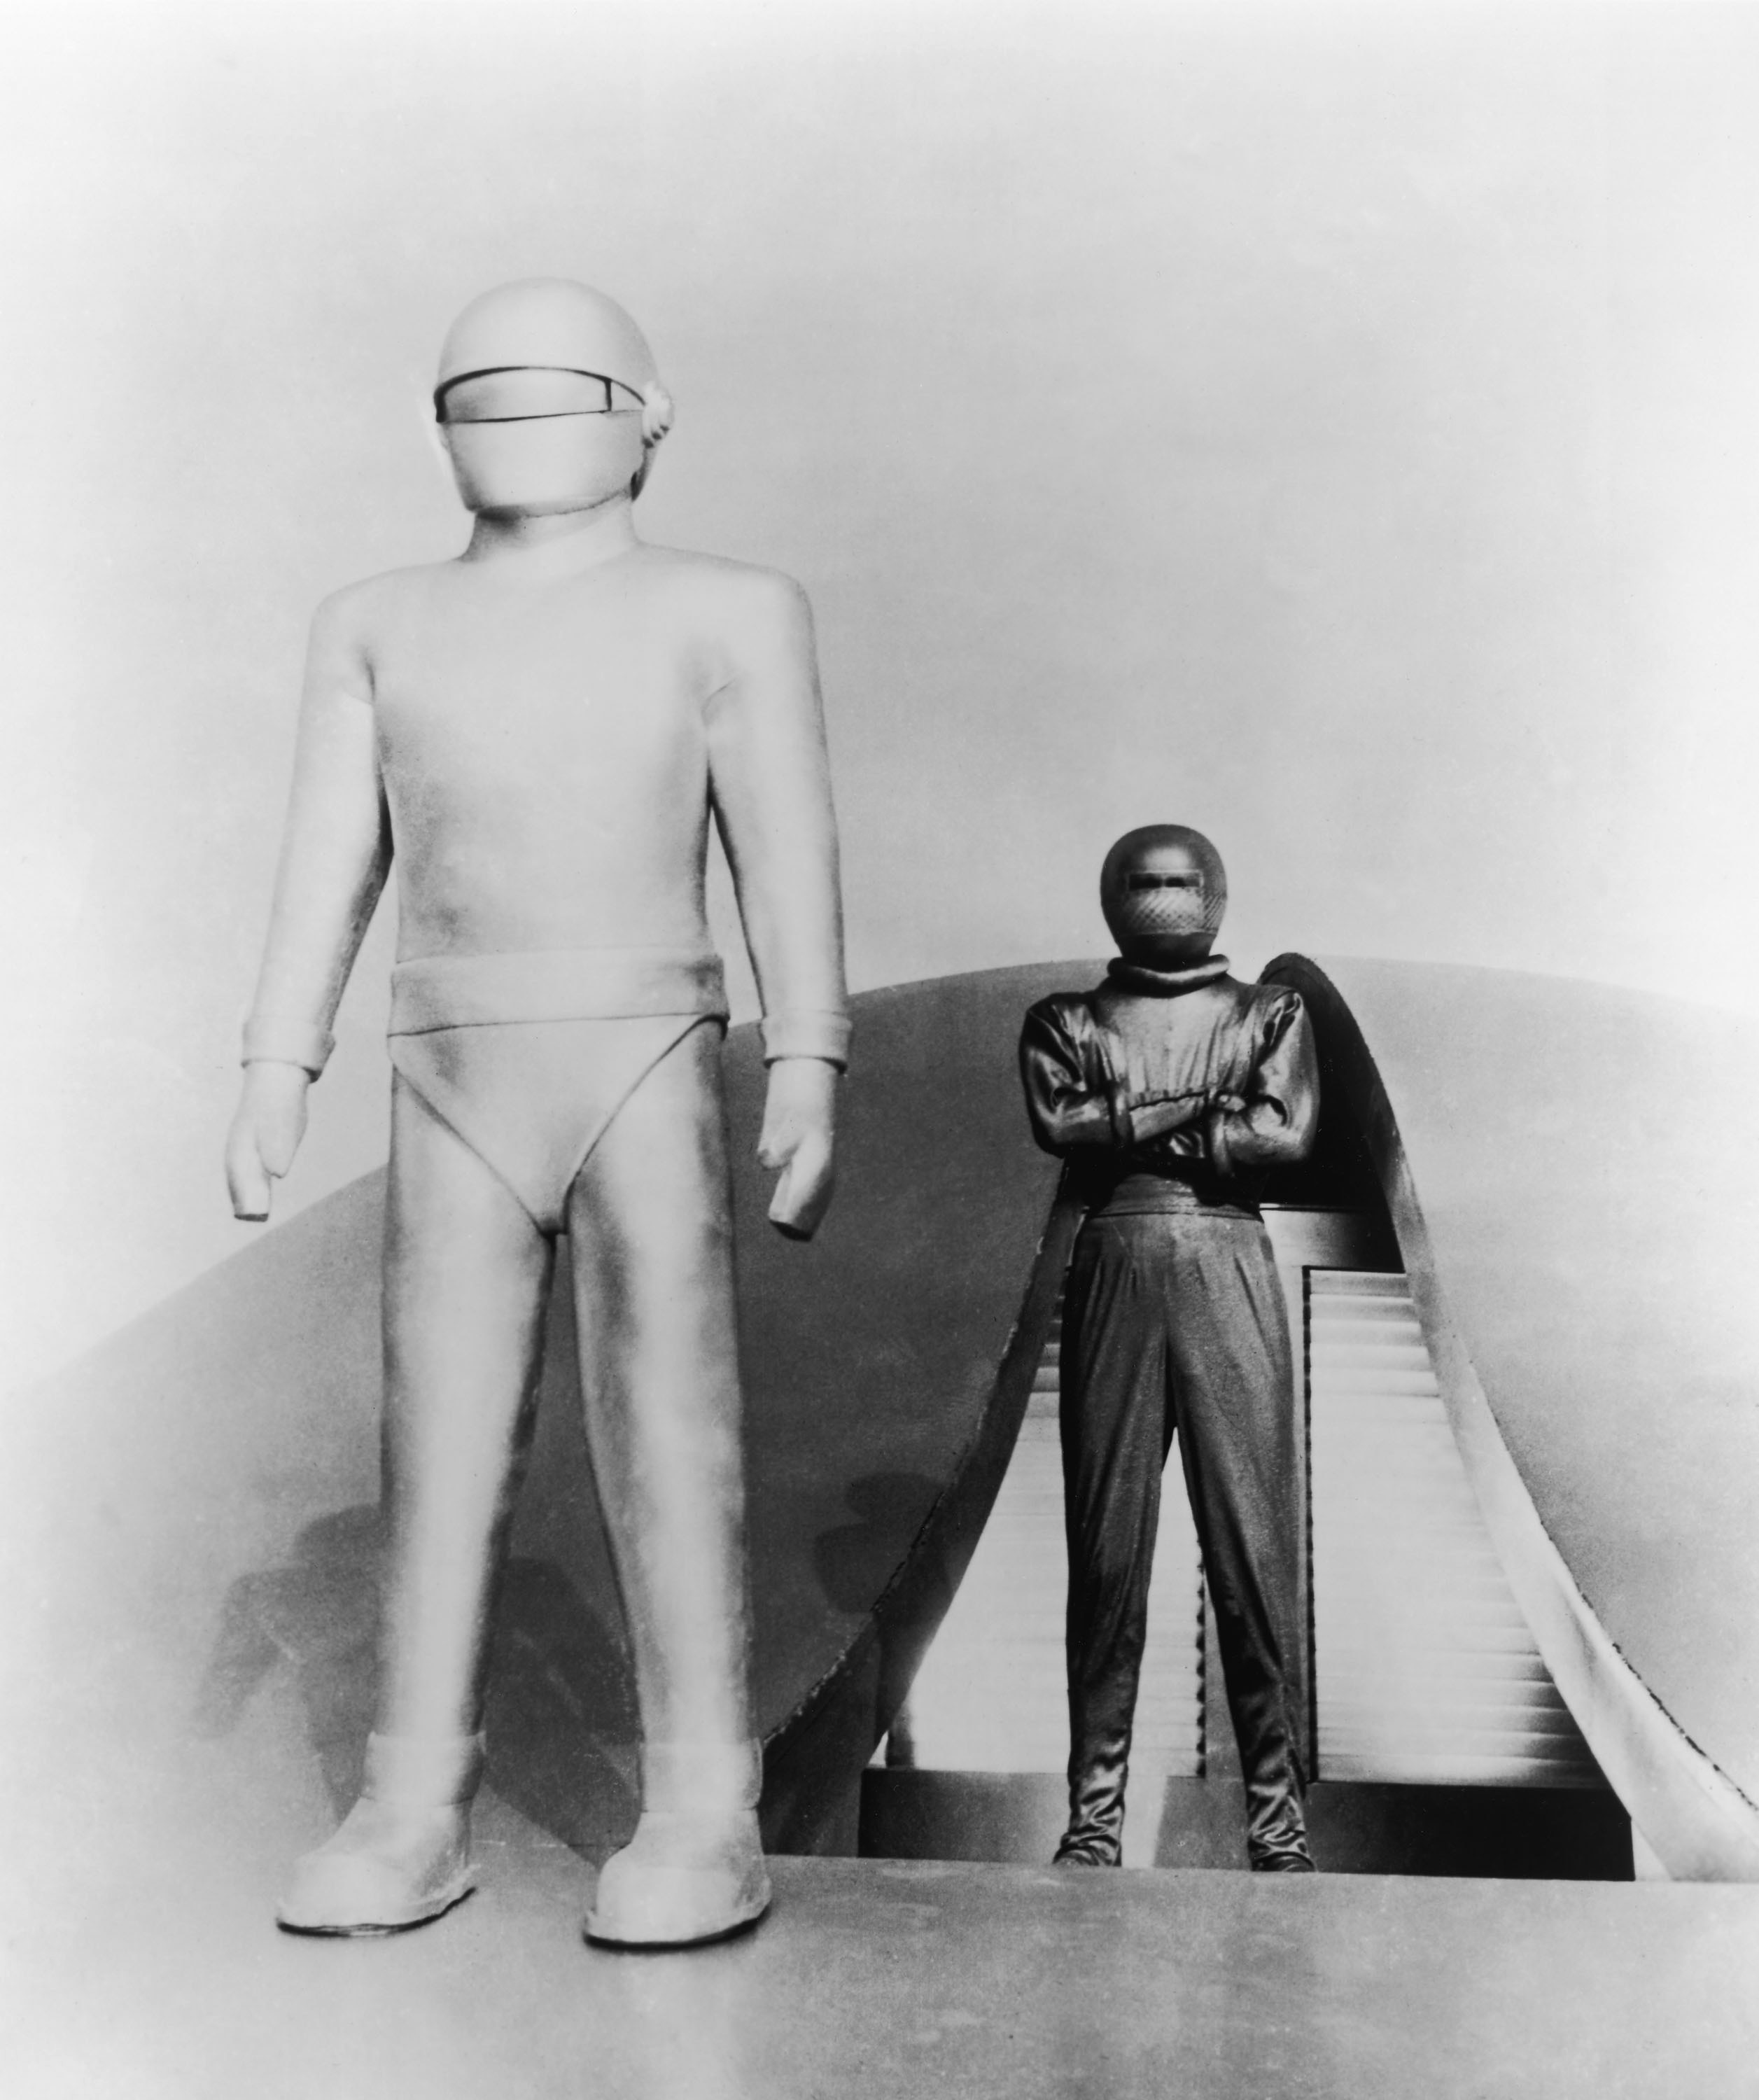 day the earth stood still The day the earth stood still torrents - a remake of the 1951 classic science fiction film about an alien visitor and his giant robot counterpart who visit earth the day the earth stood still torrents - a remake of the 1951 classic science fiction film about an alien visitor and his giant robot counterpart who visit earth.